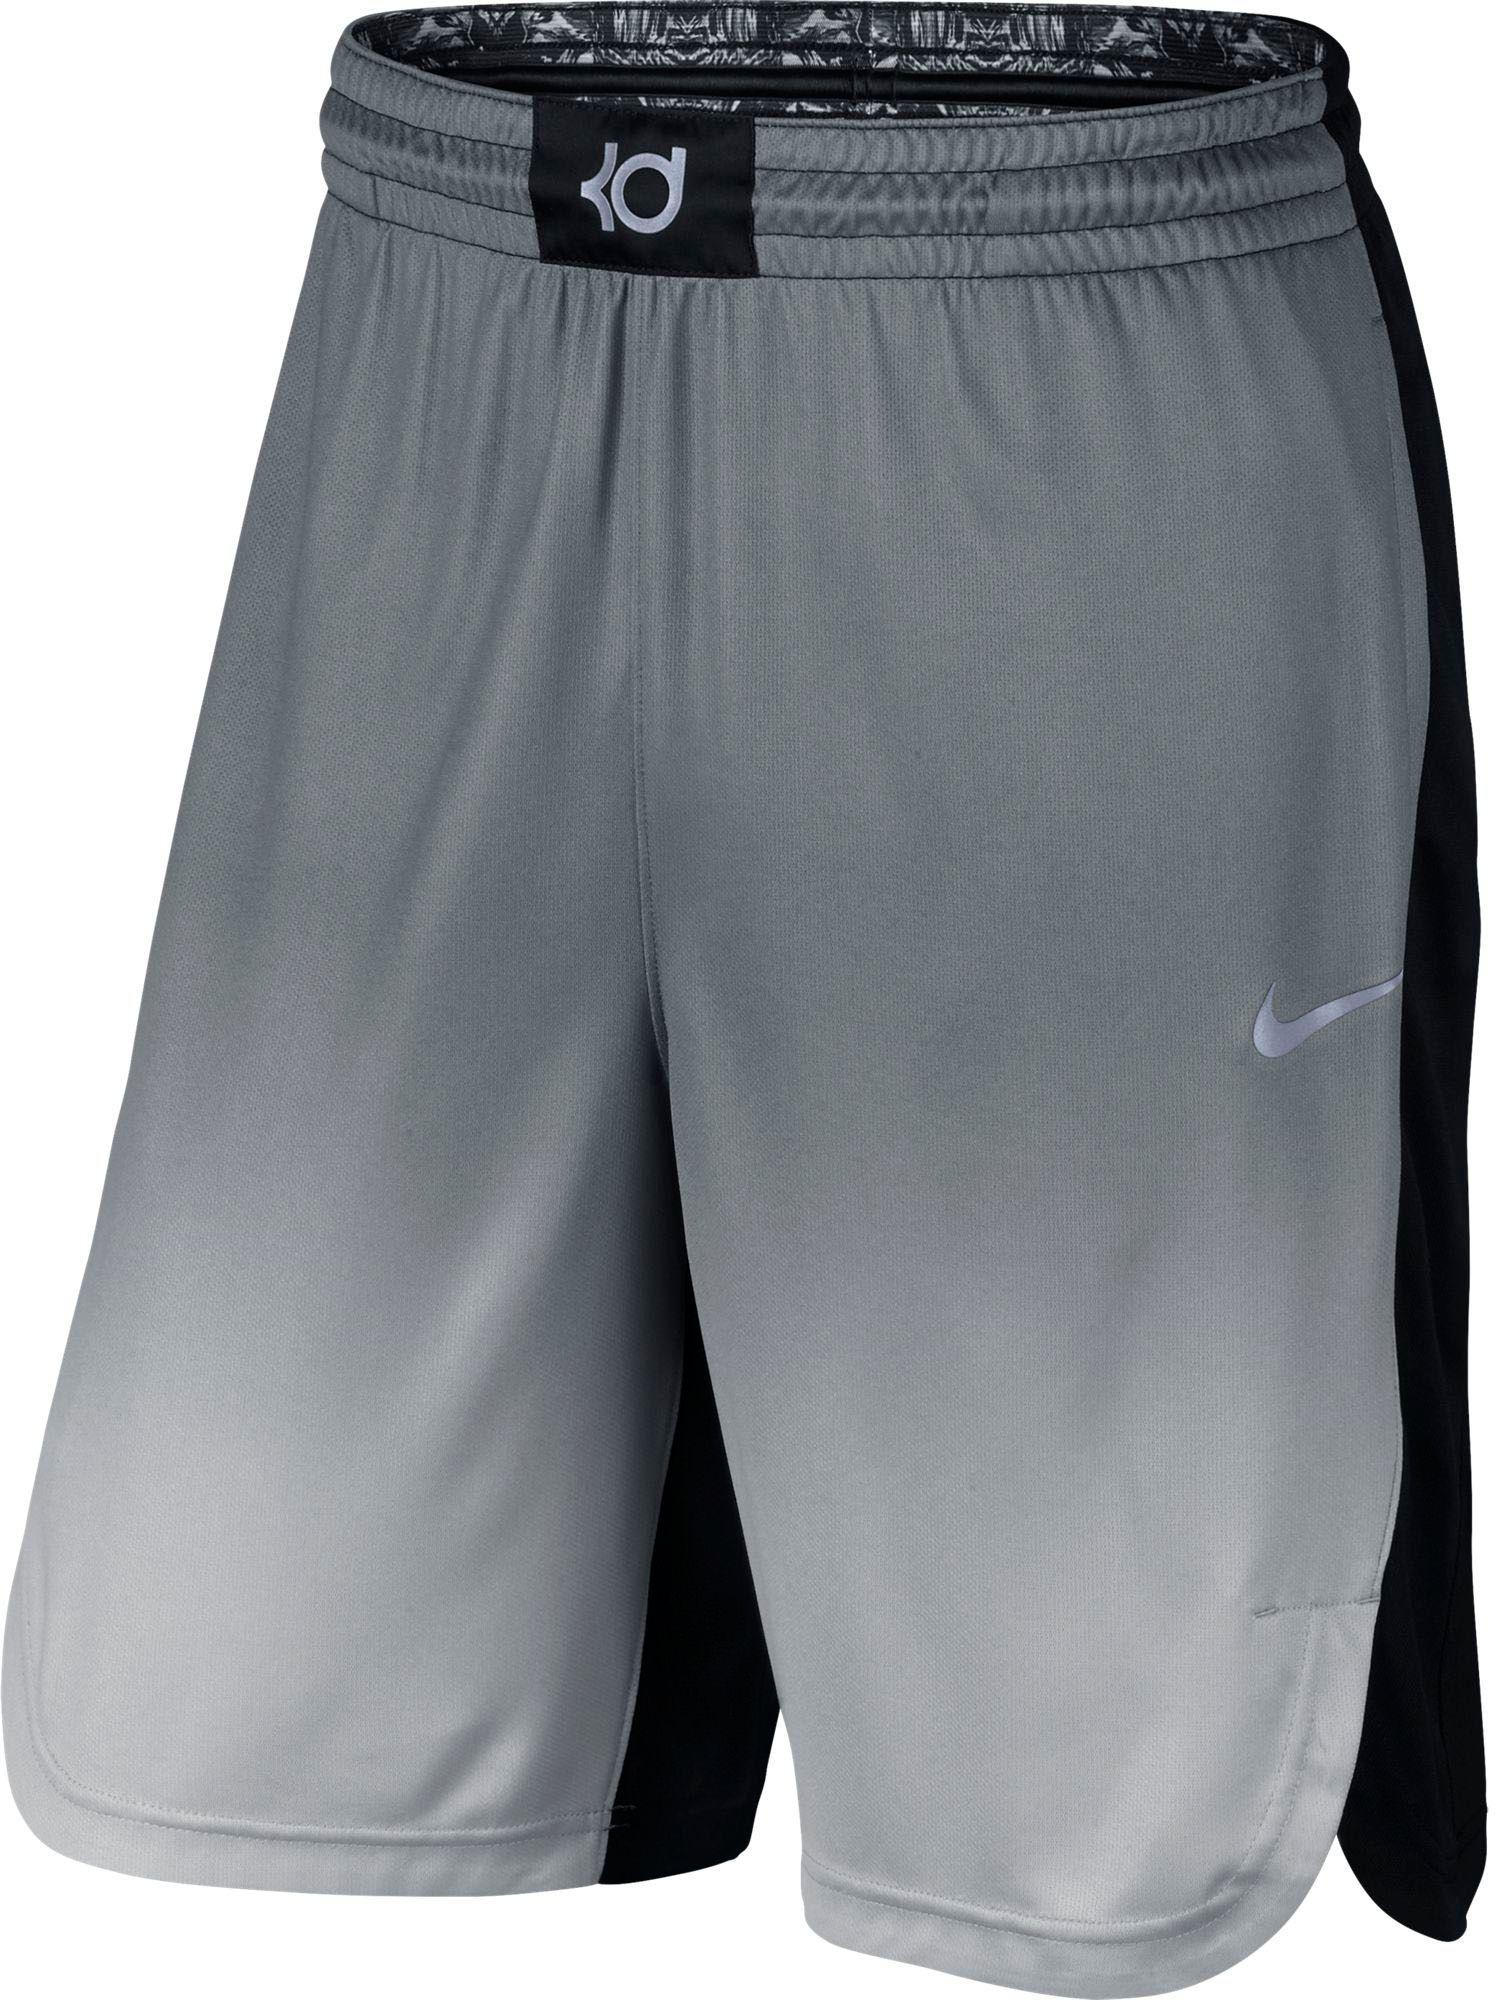 bfb5442a256e Lyst - Nike Kd Dry Hyper Elite Basketball Shorts in Gray for Men